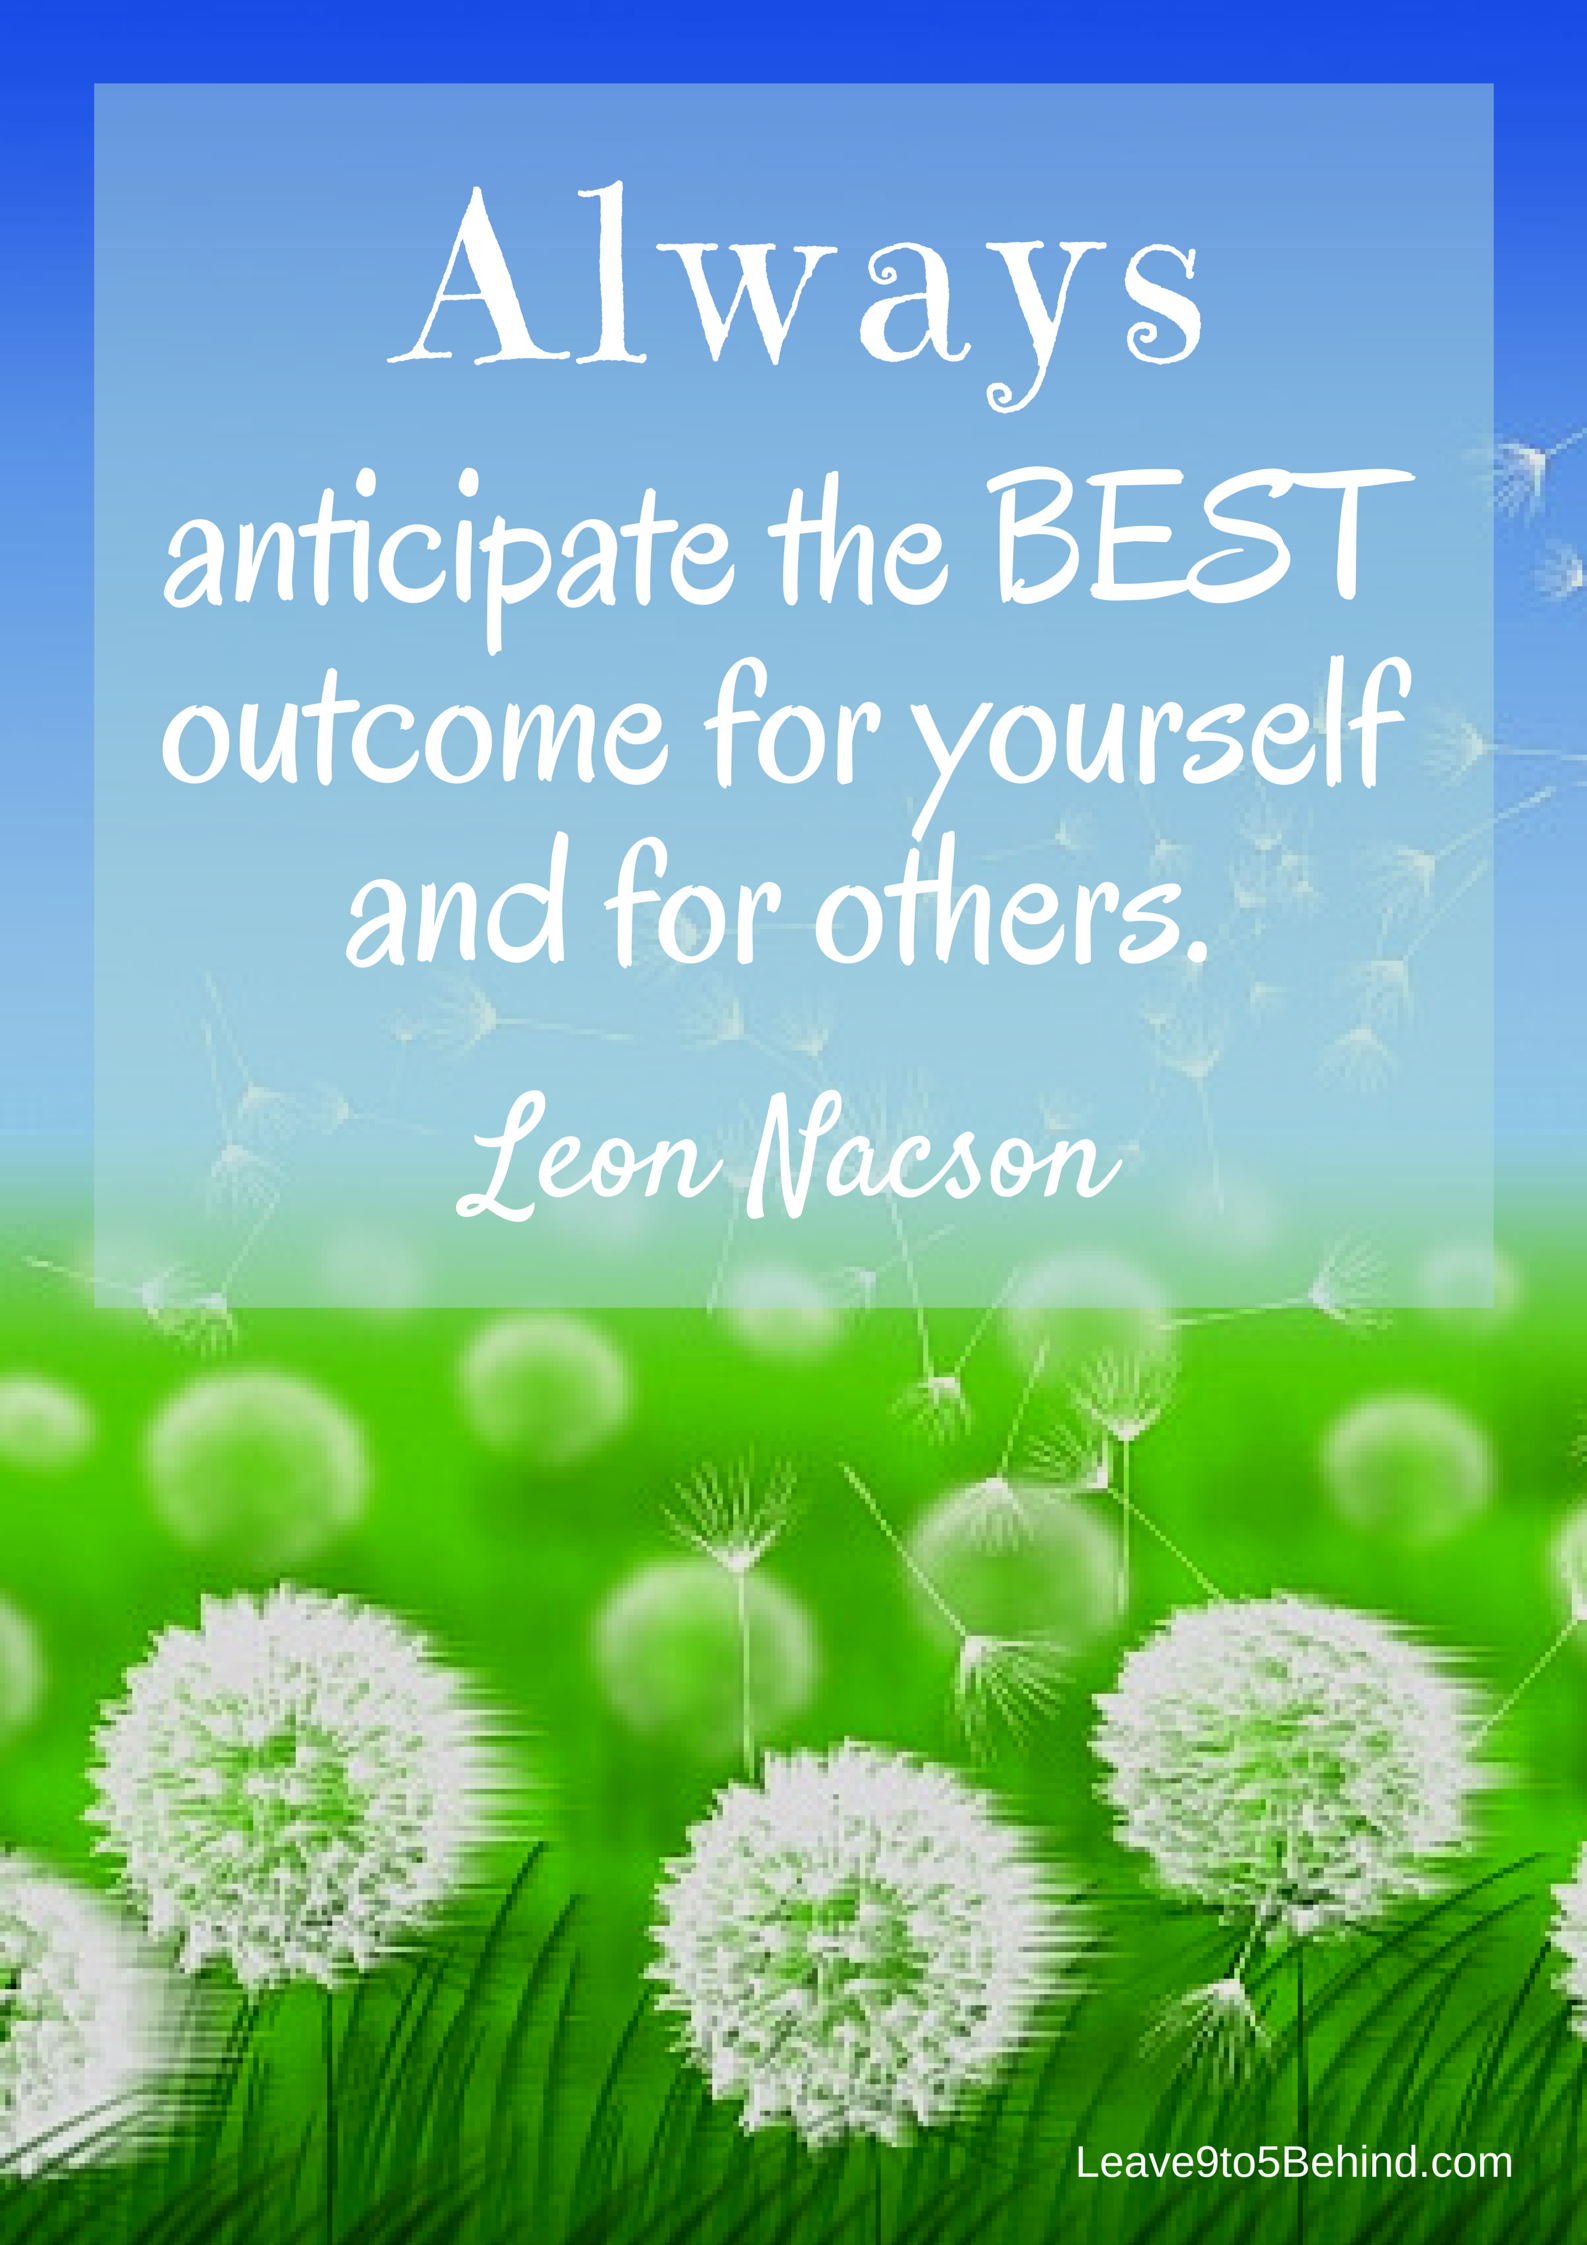 Always anticipate the BEST outcome for yourself and for others. - Leon Nacson